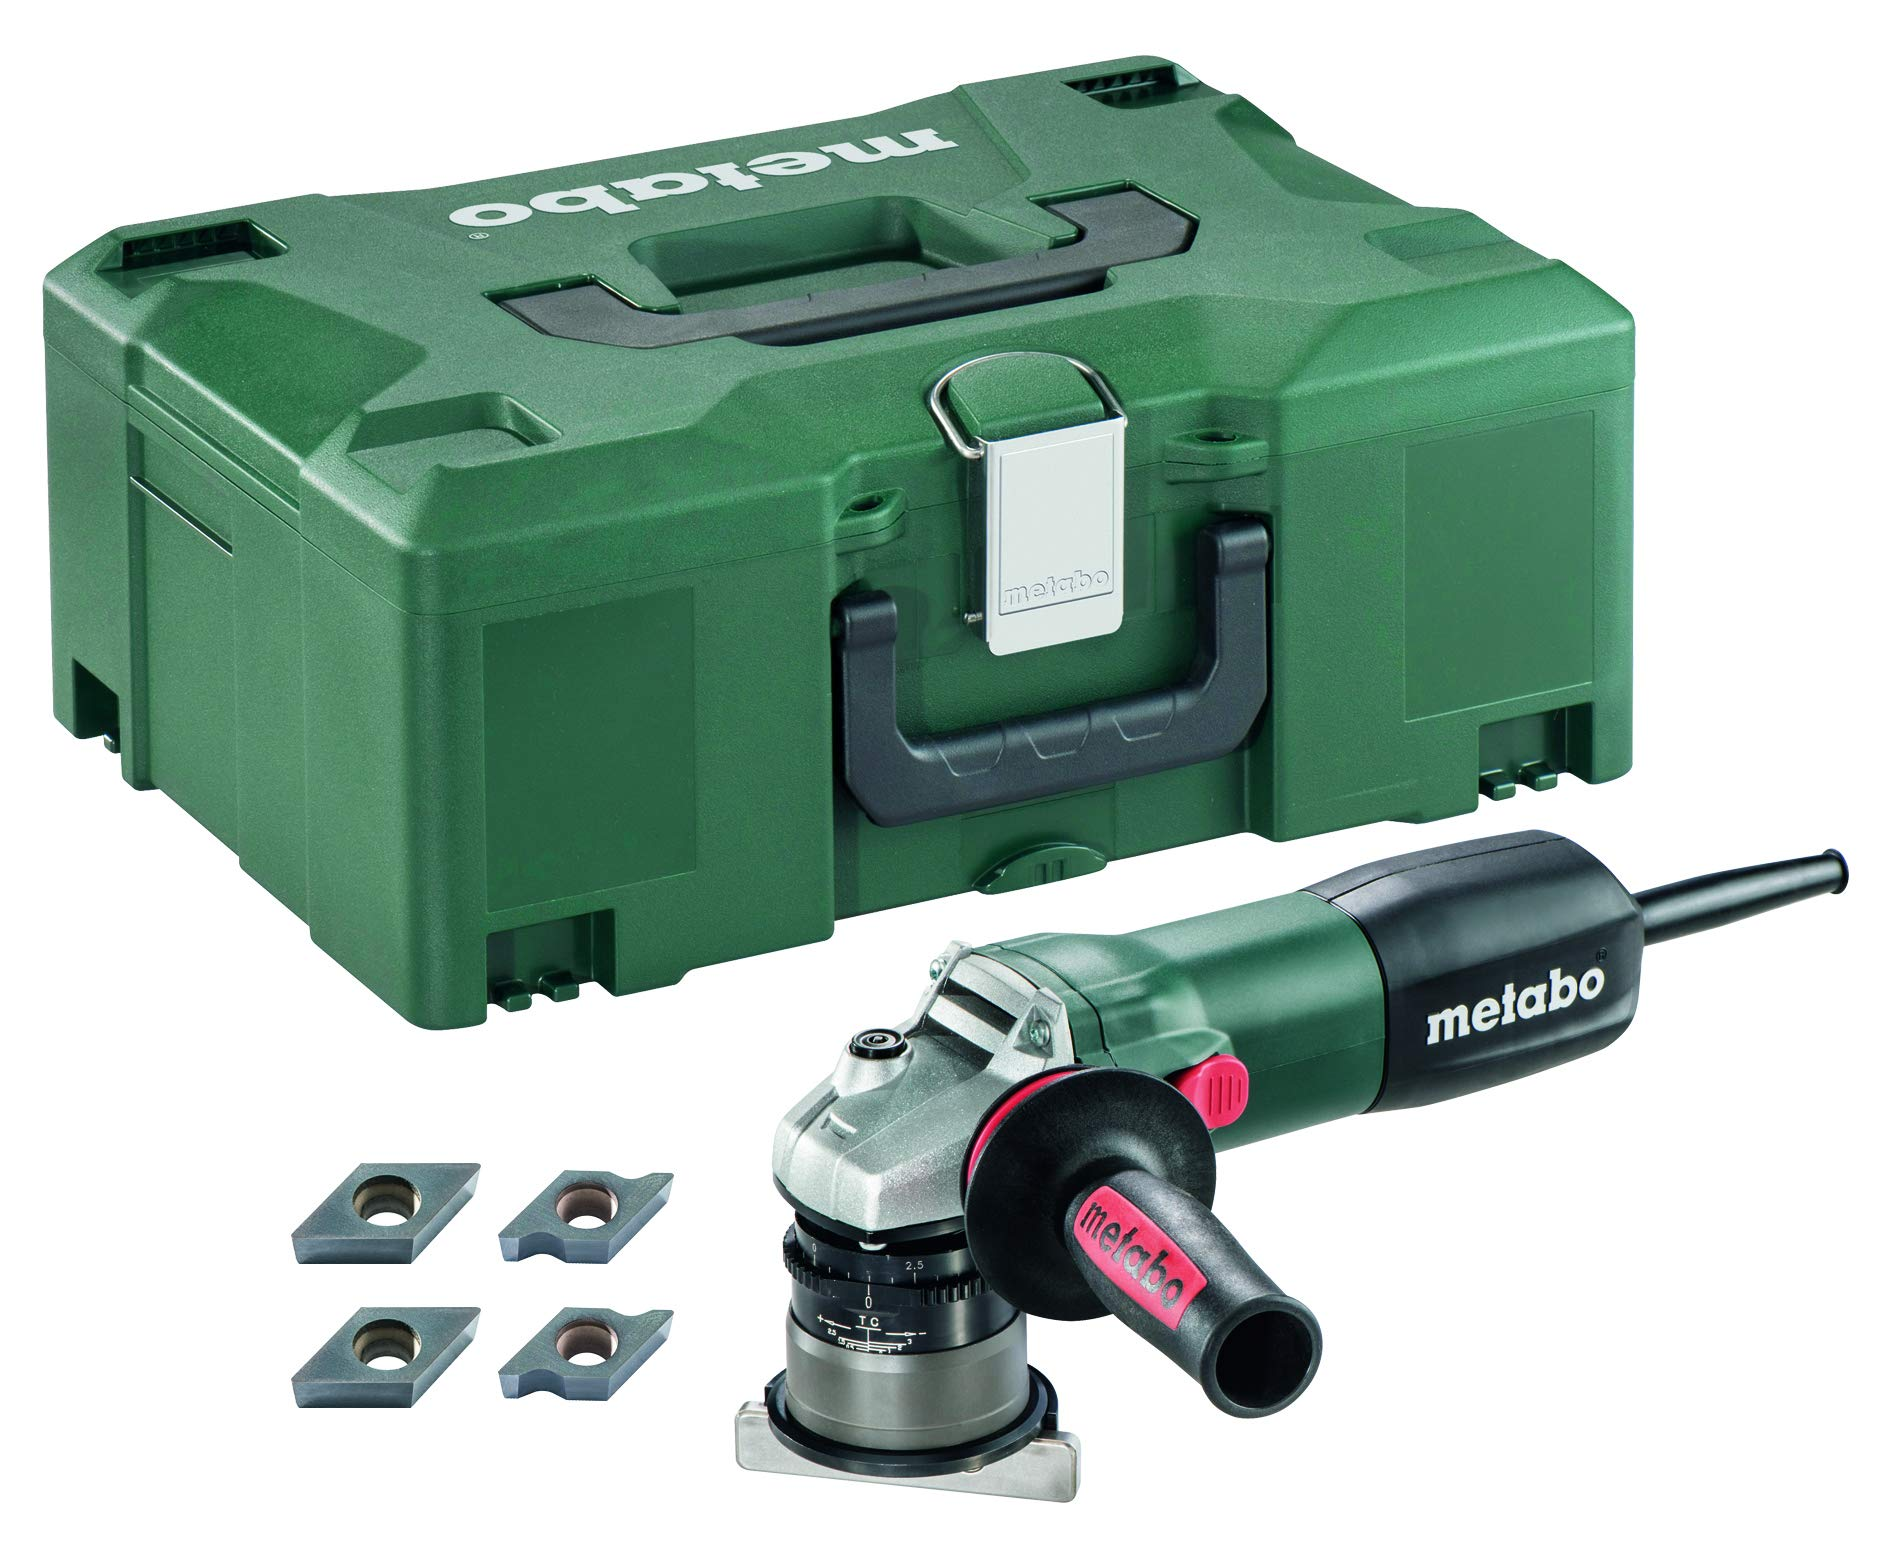 """Metabo- 1/8"""" Variable Speed Chamfer/Radius Tool - 4, 500-11, 500 Rpm - 8.0 Amp - W/Lock-On (601751750), Beveling Tools"""